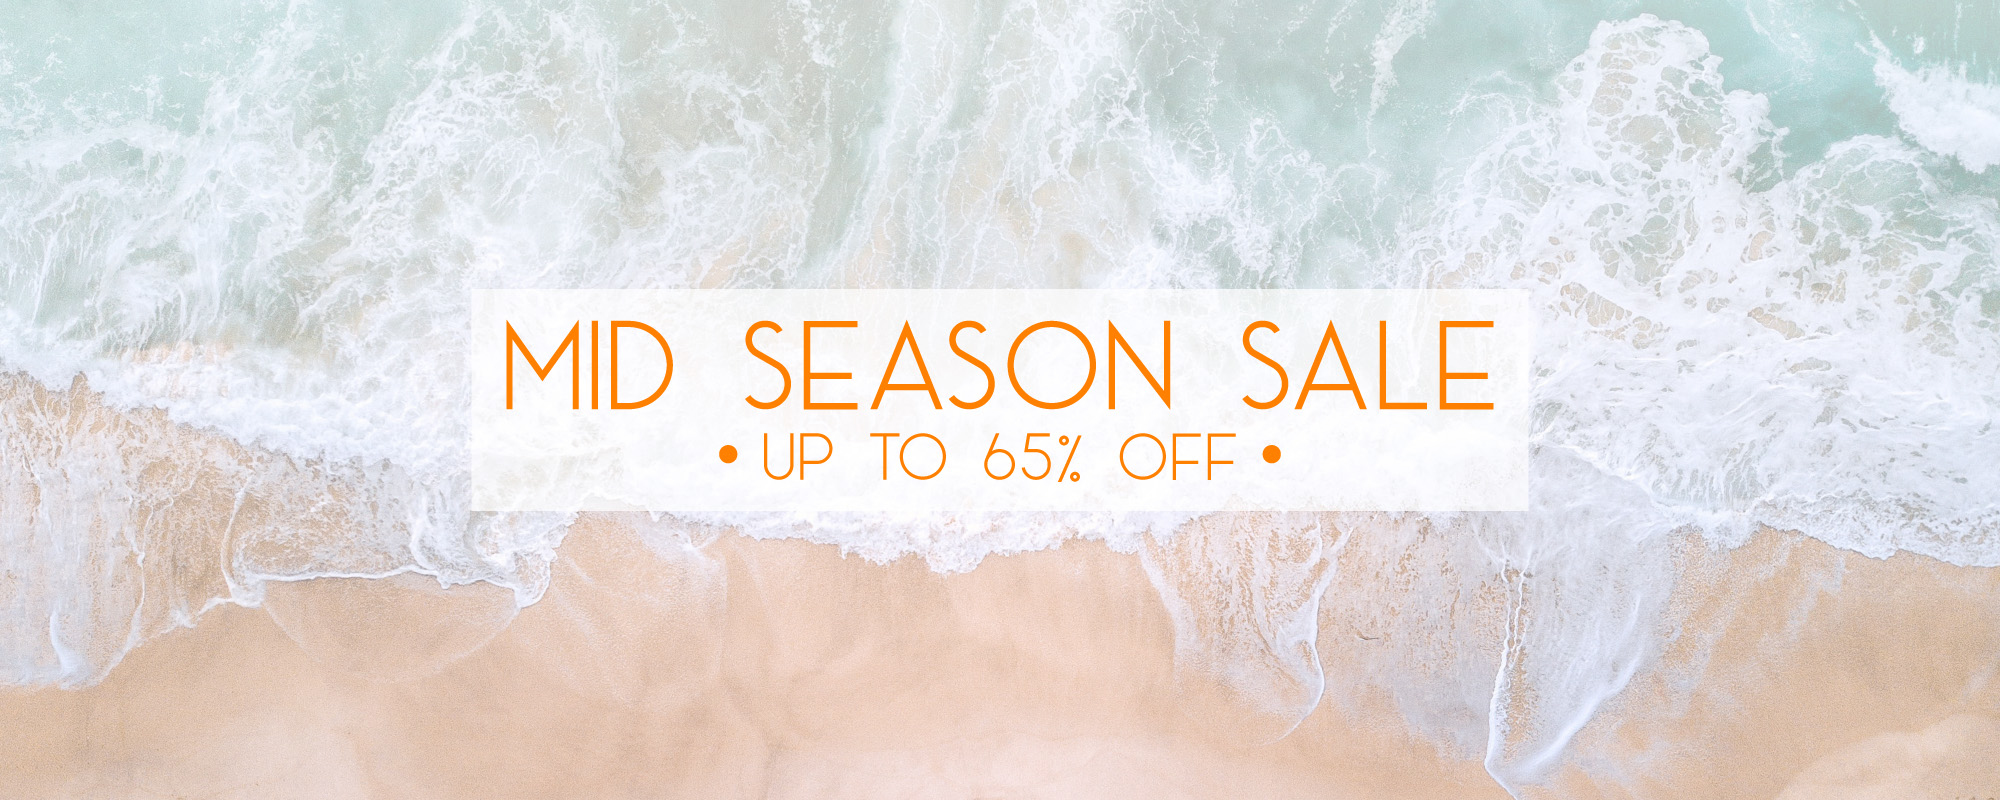 Gay Giano Mid Season Sales. Selected products up to 65% off